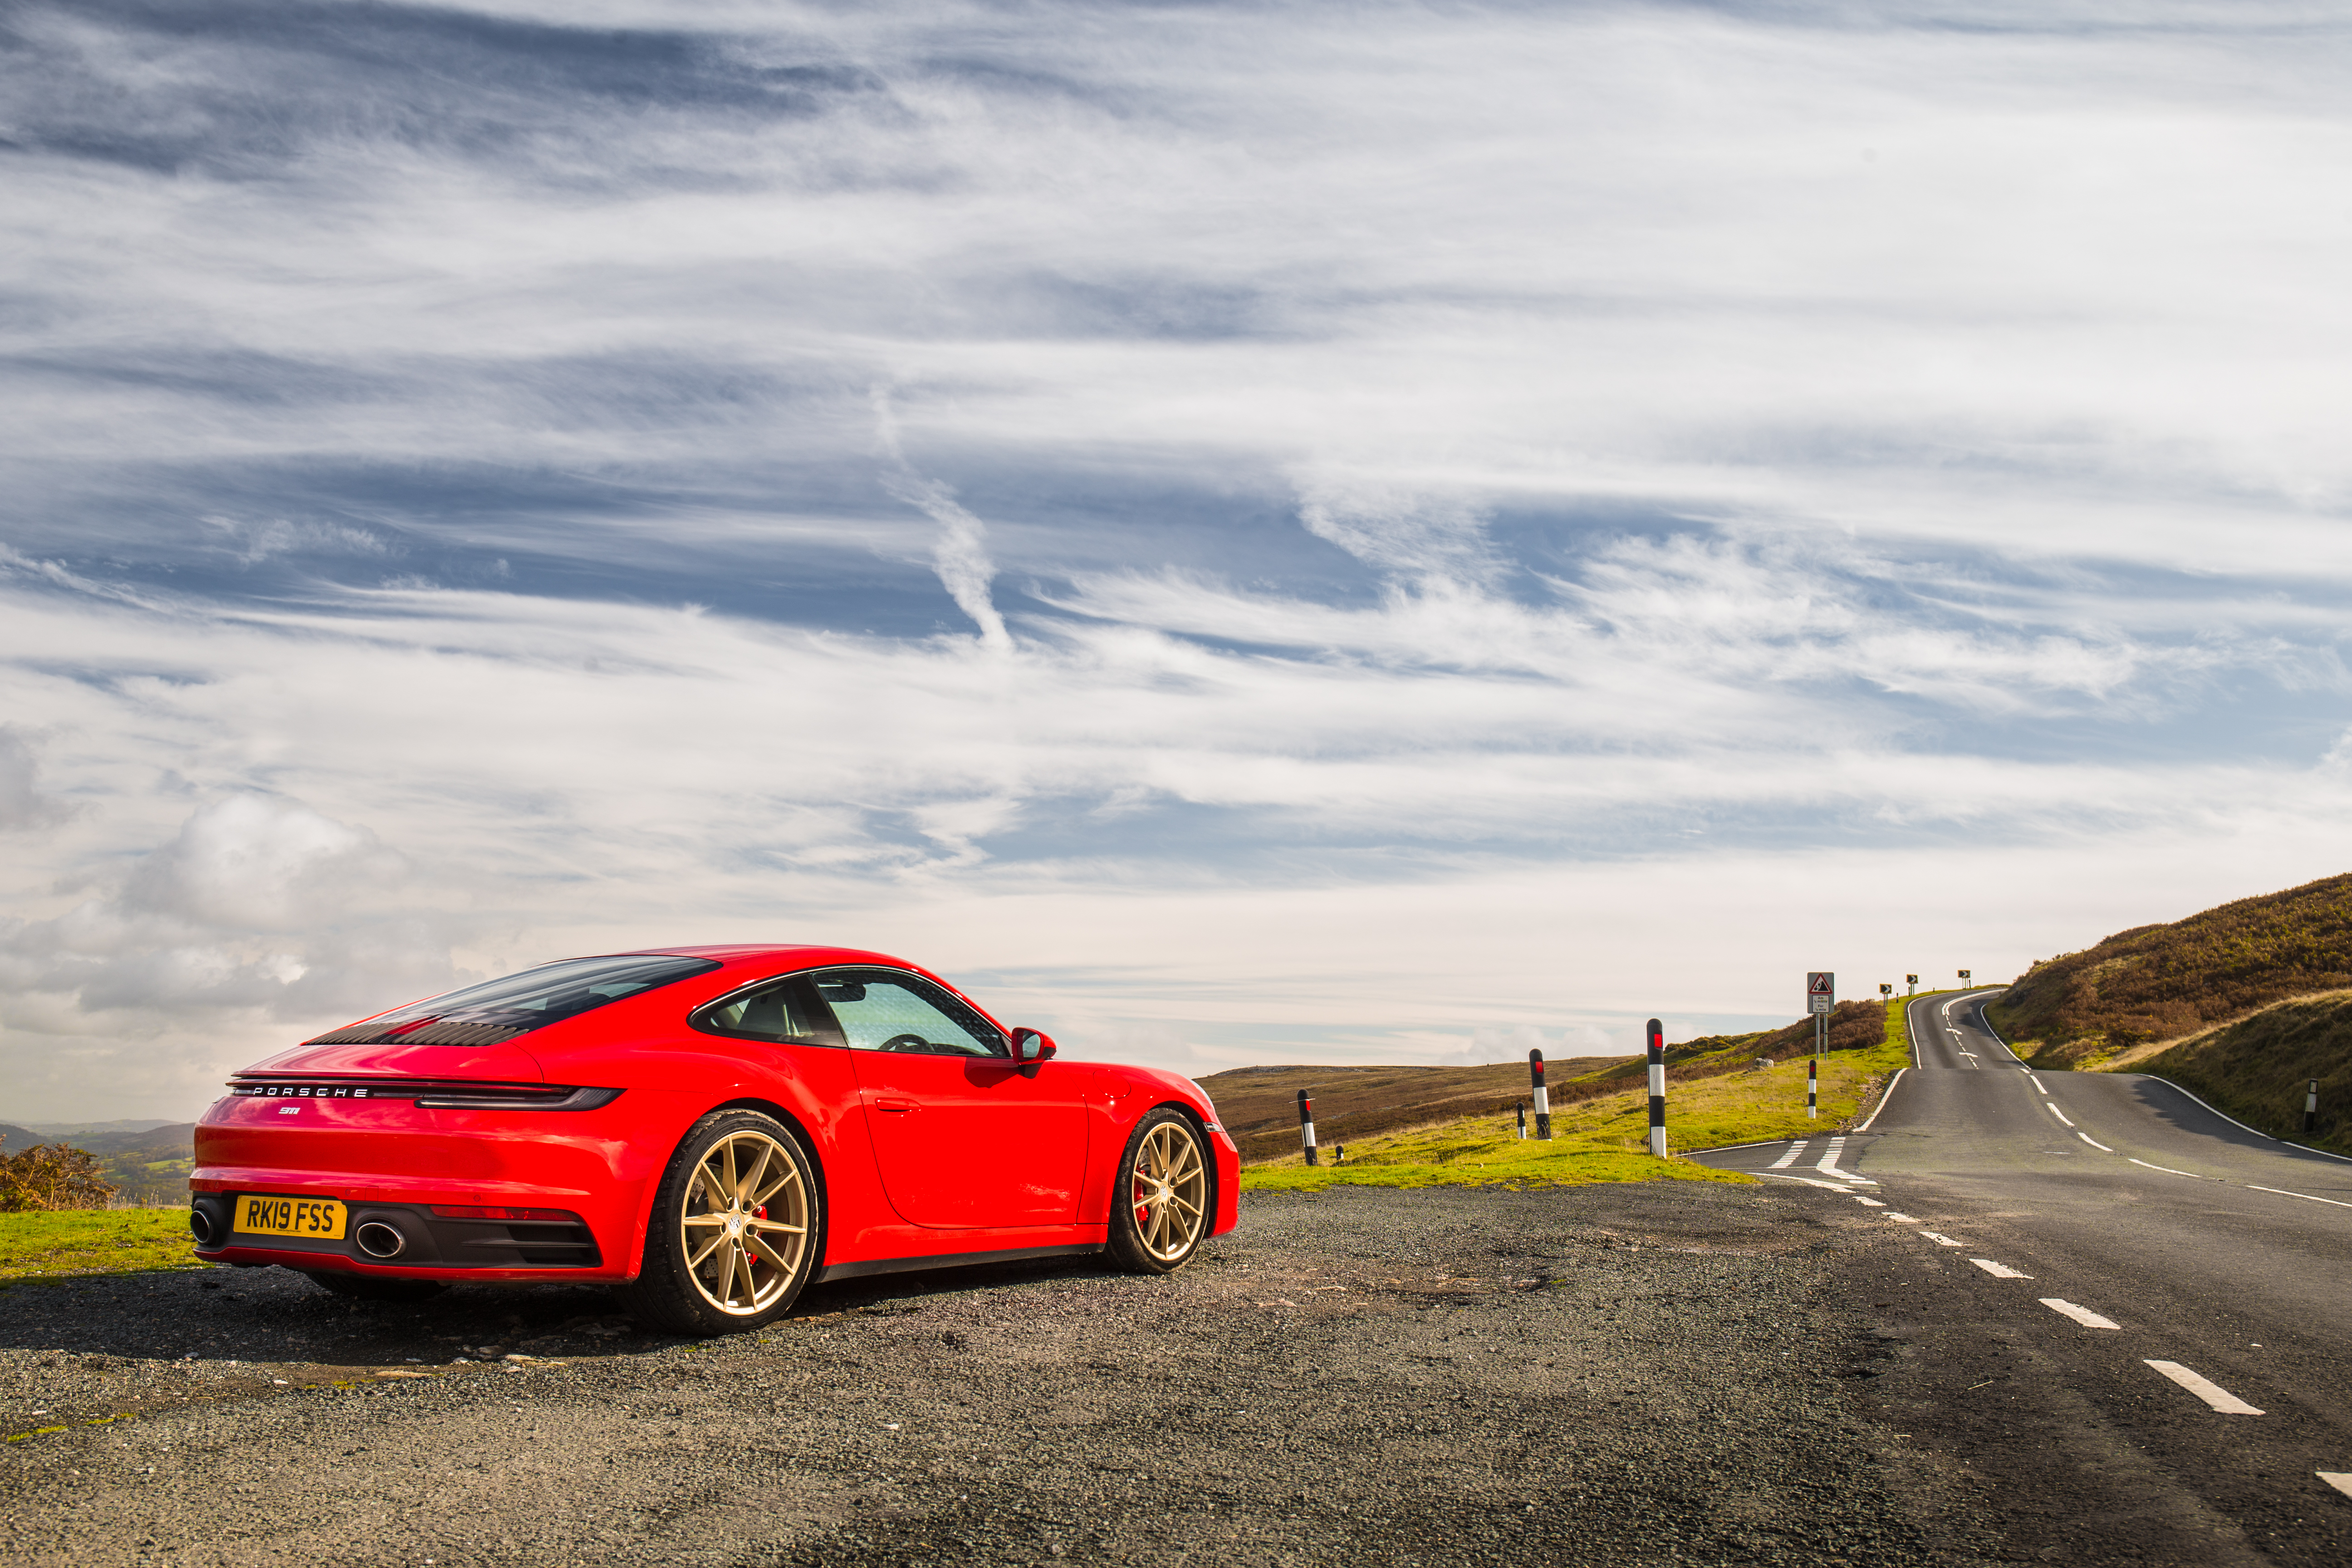 The 992 generation car gets more tech than ever